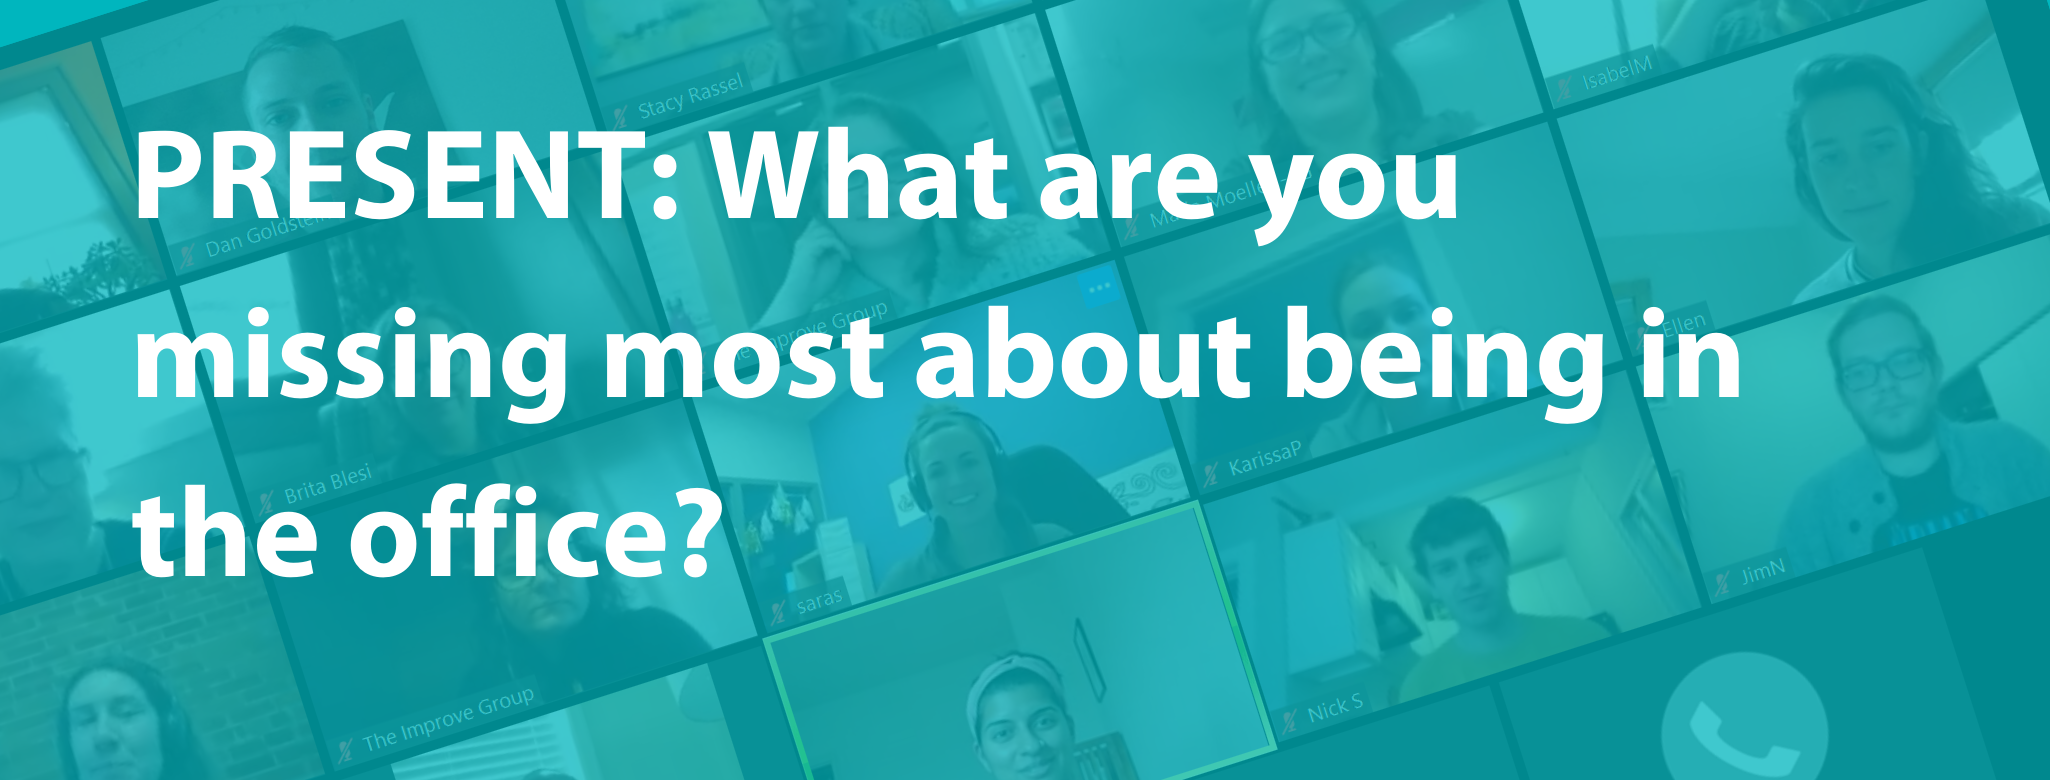 "An image of white text on a teal background that asks ""PRESENT: What are you missing most about being in the office?"" and an image of all our team members on Zoom is located faintly in the background"